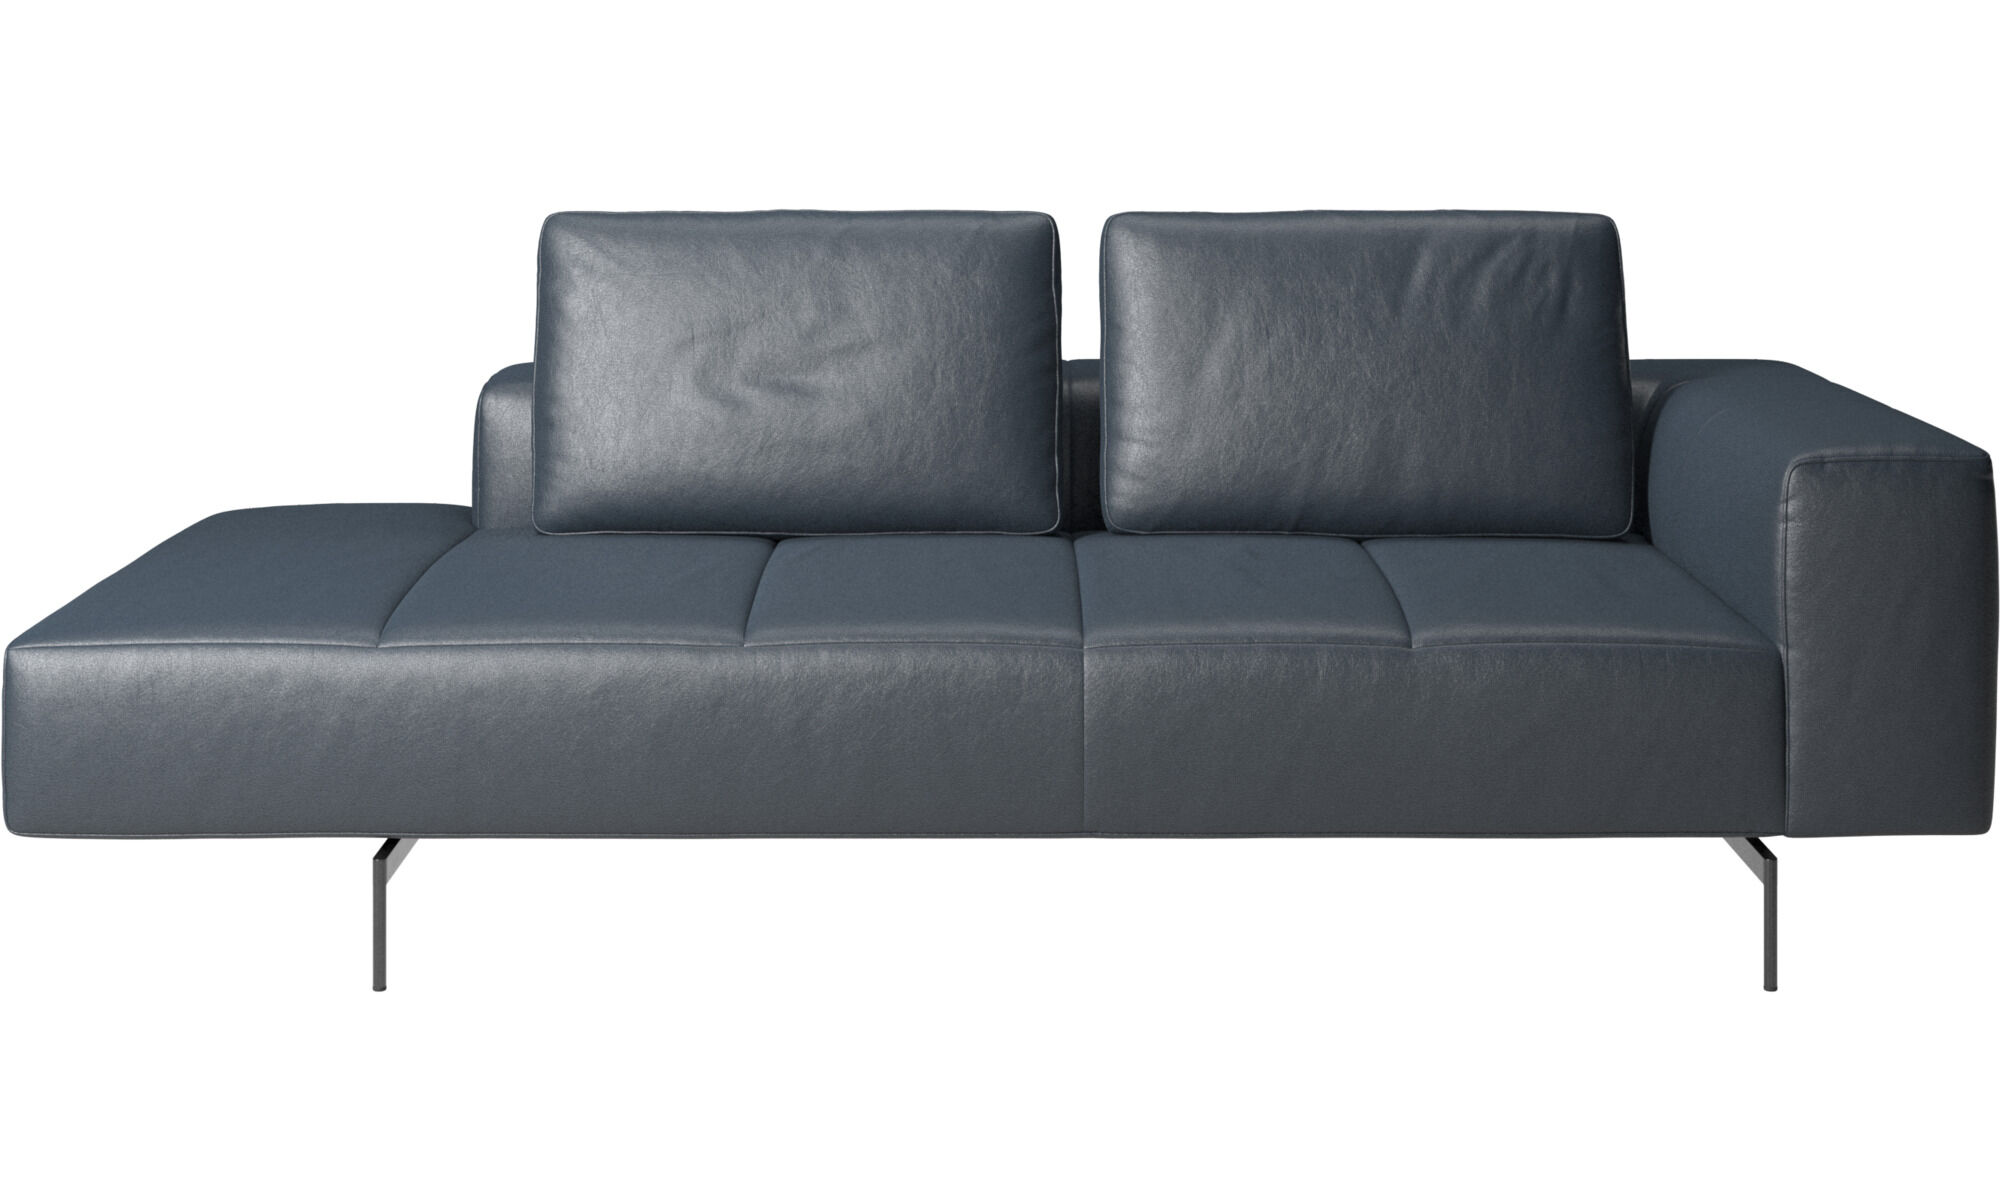 chez long sofa bed proper table height modern sofas for your home contemporary design from boconcept chaise longue amsterdam resting module armrest right open end left